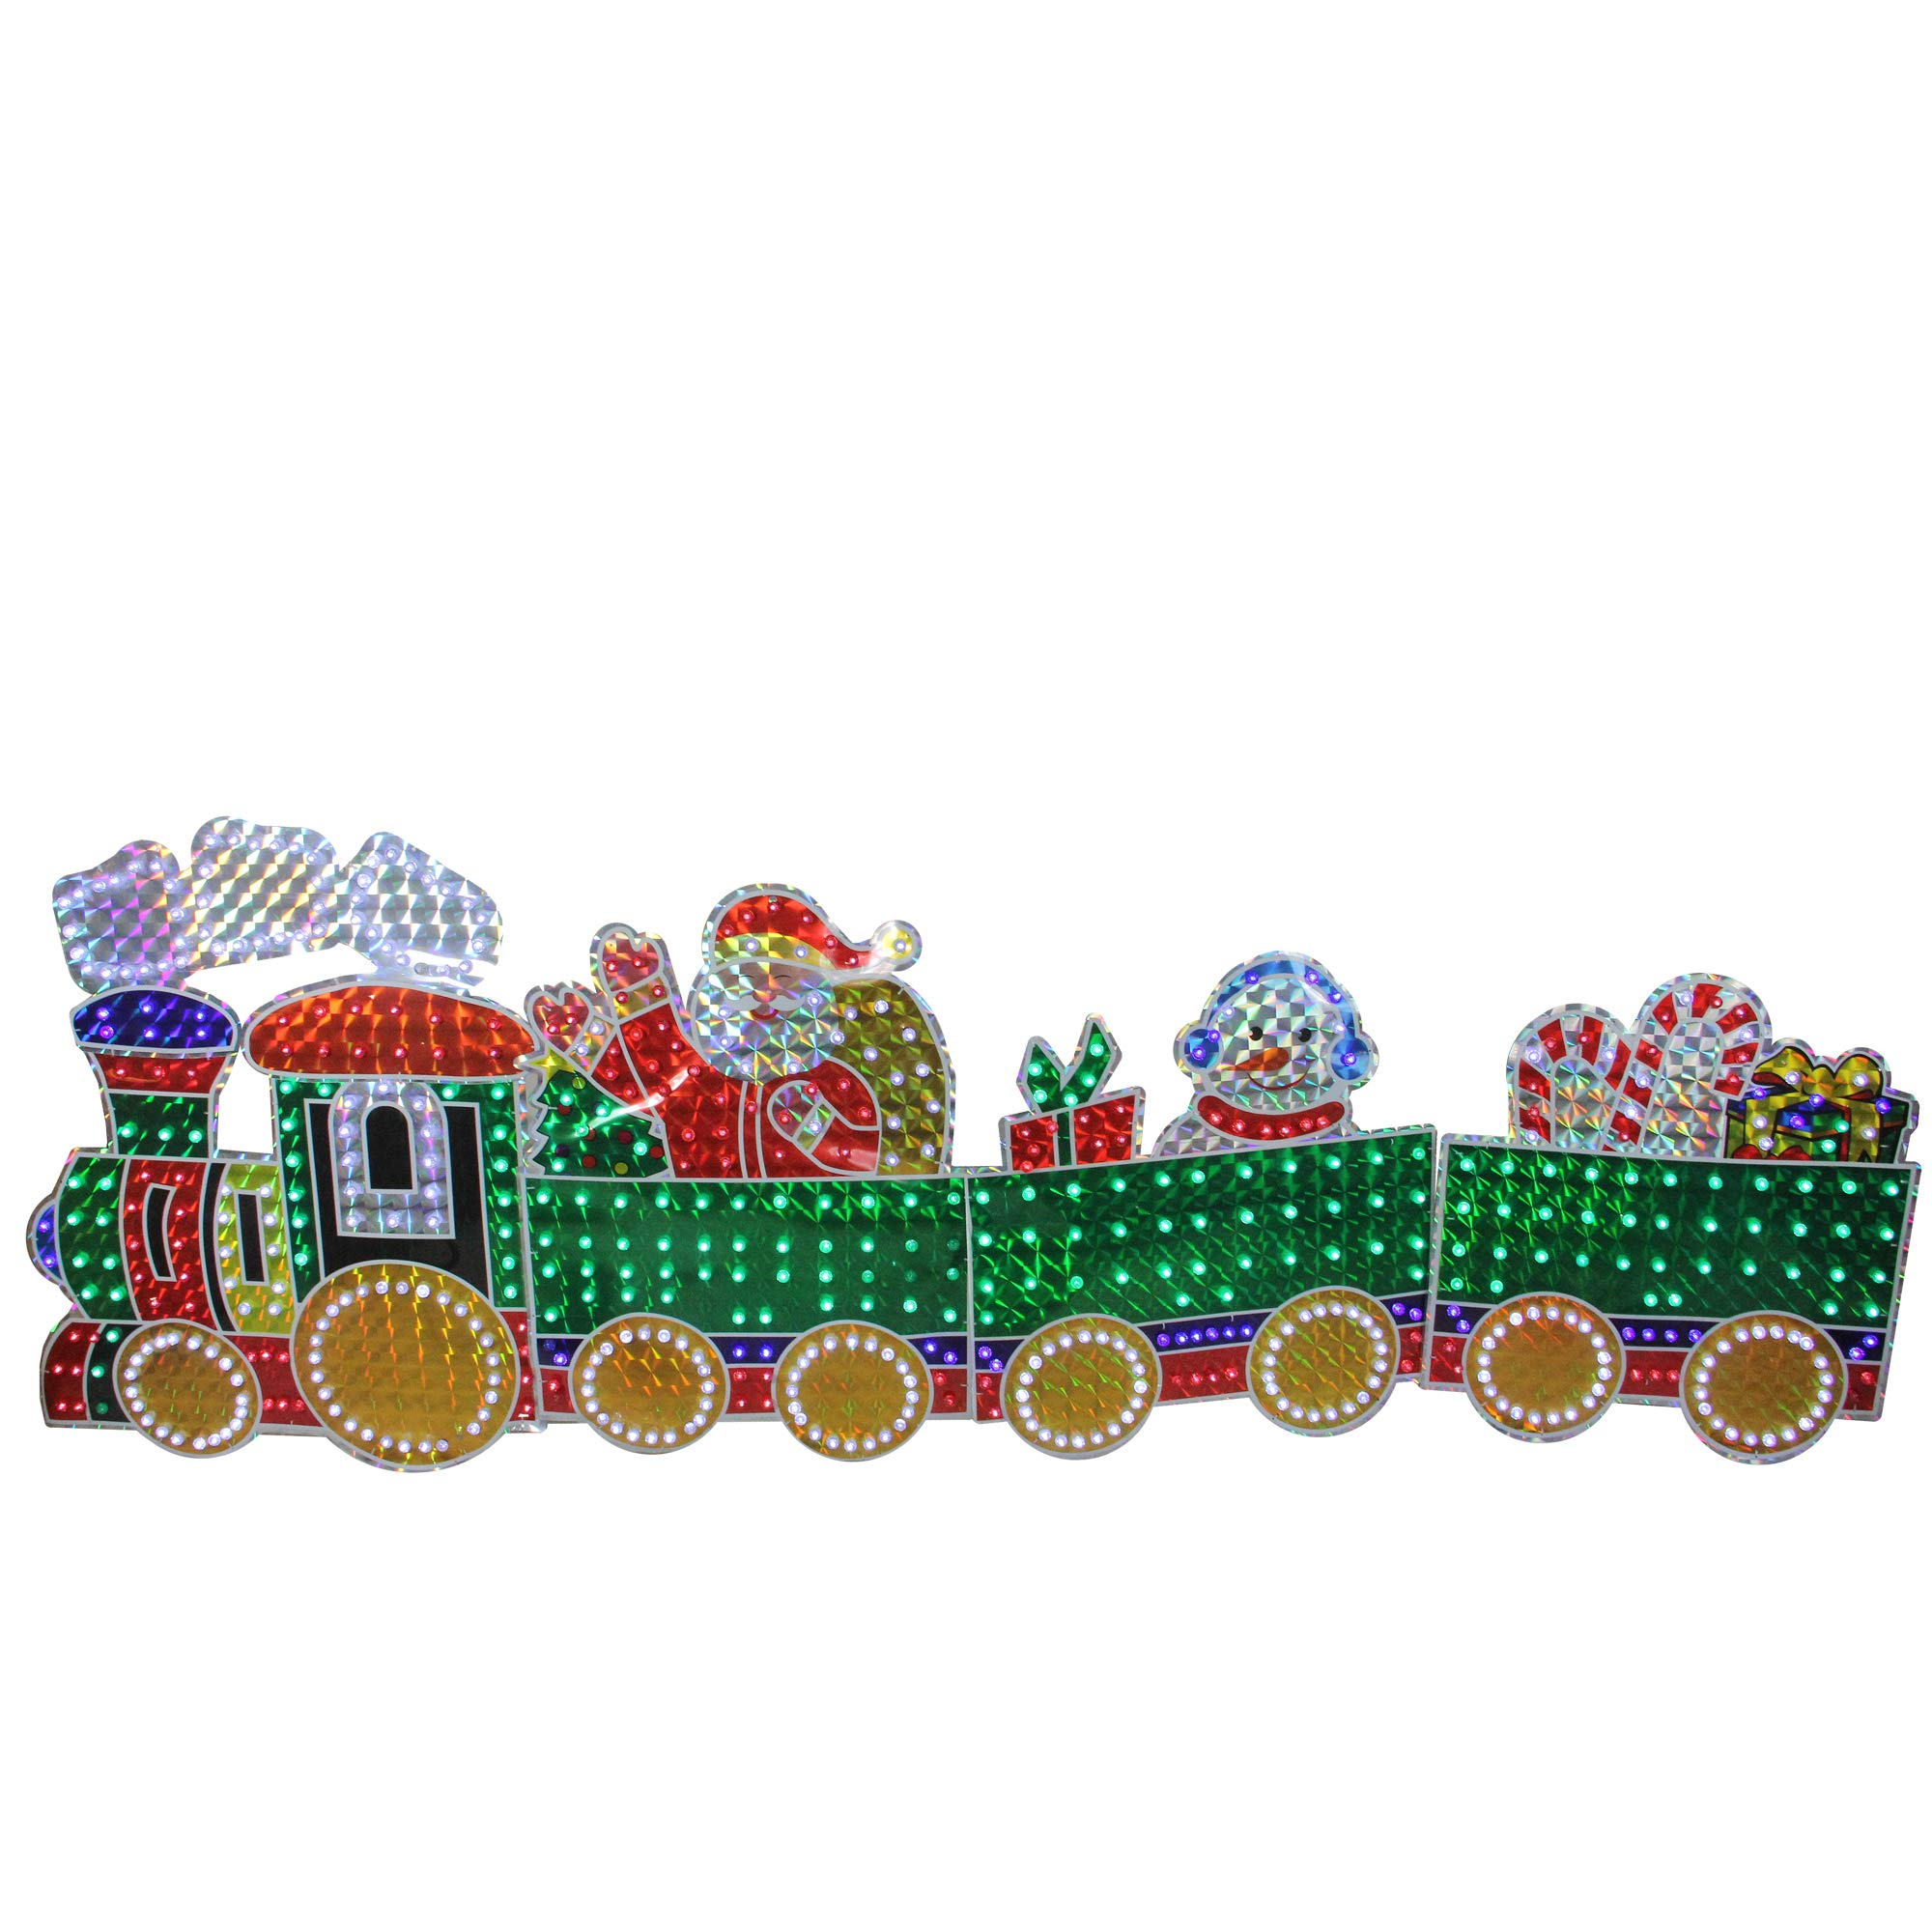 Northlight 4-Piece Holographic LED Lighted Motion Train Set Outdoor Christmas Decoration